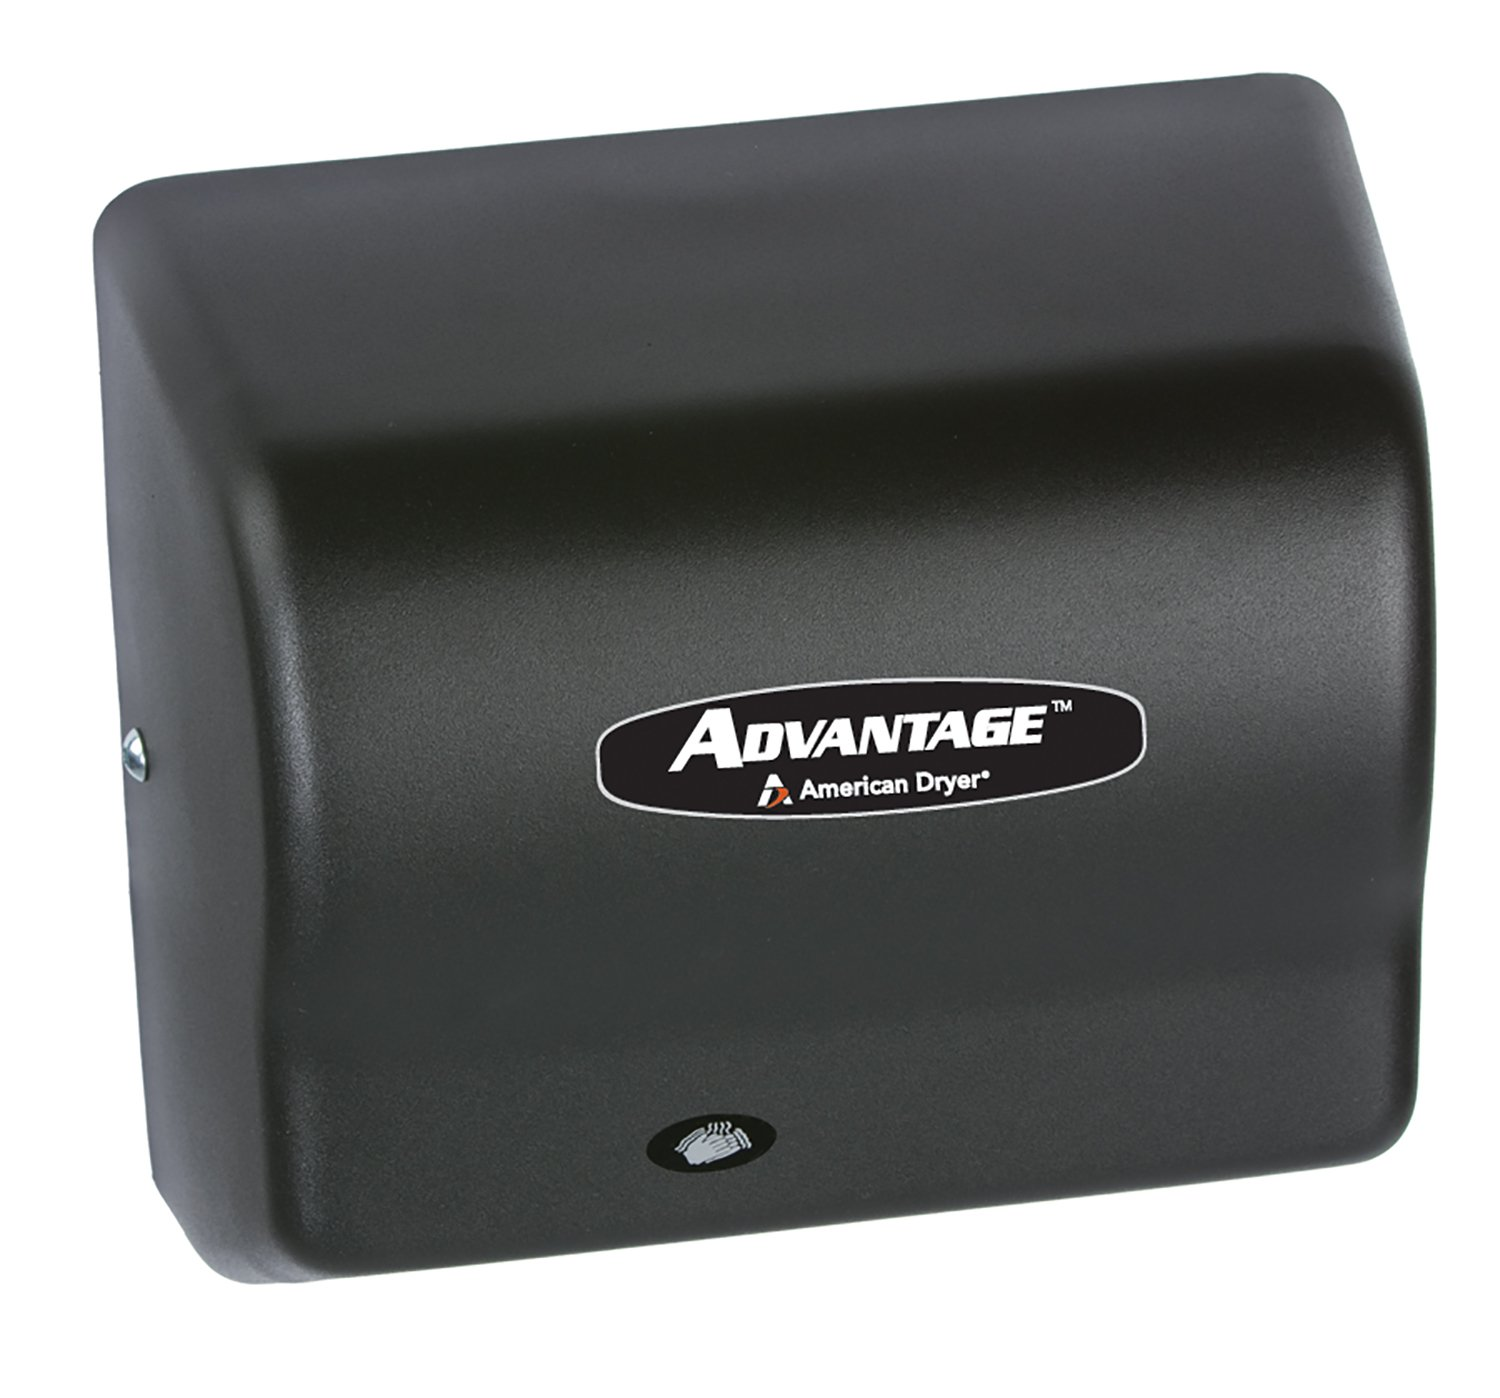 Image of American Dryer AD90-BG Advantage Steel Standard Automatic Hand Dryer, Black Graphite Epoxy Finish, 1/8 HP Motor, 100-240V, 5-5/8' Length x 10-1/8' Width x 9-3/8' Height Hand Dryers